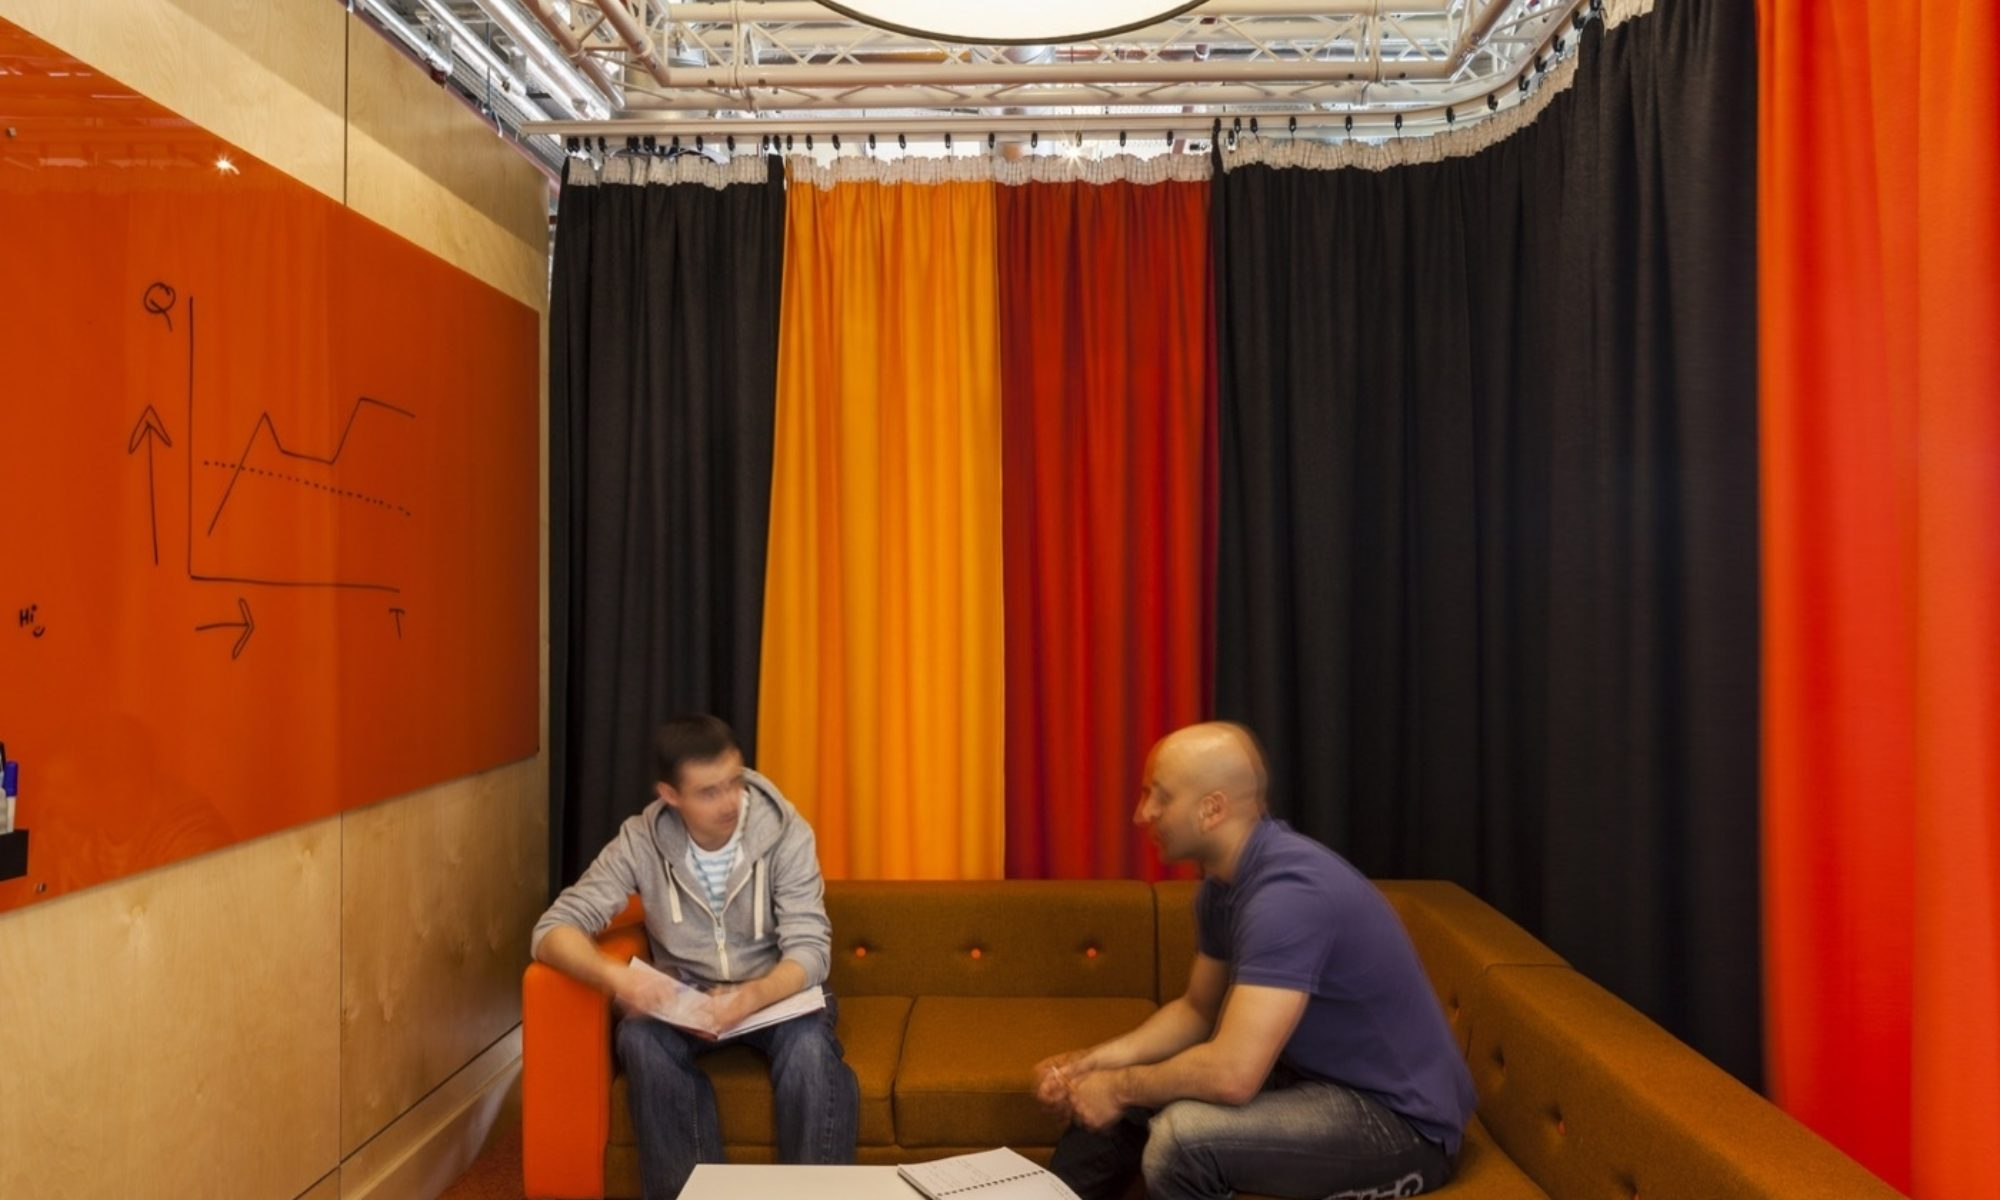 drapes in private meeting area